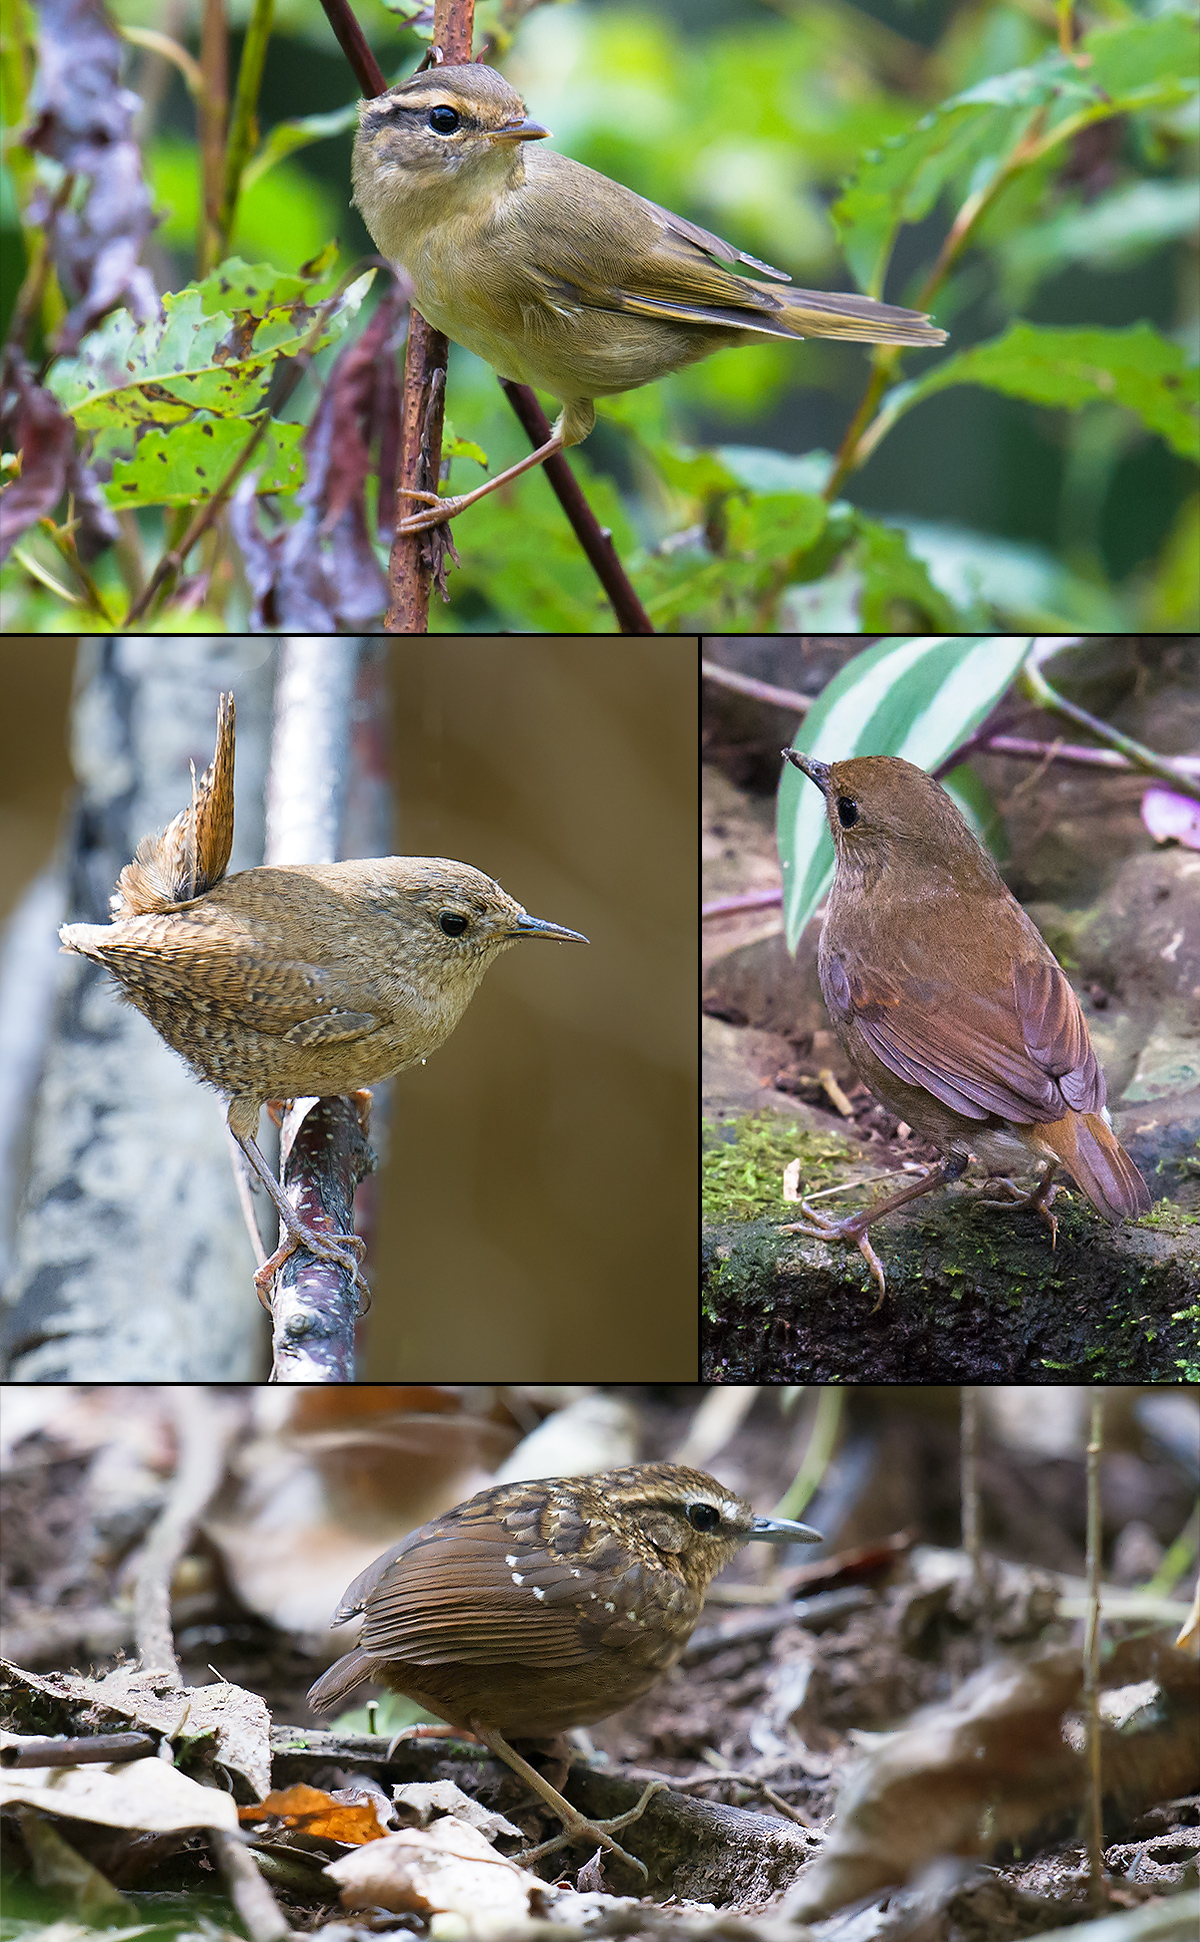 Species similar to Asian Stubtail. Clockwise from top: Radde's Warbler, Lesser Shortwing Eyebrowed Wren-Babbler, Eurasian Wren. (Craig Brelsford)